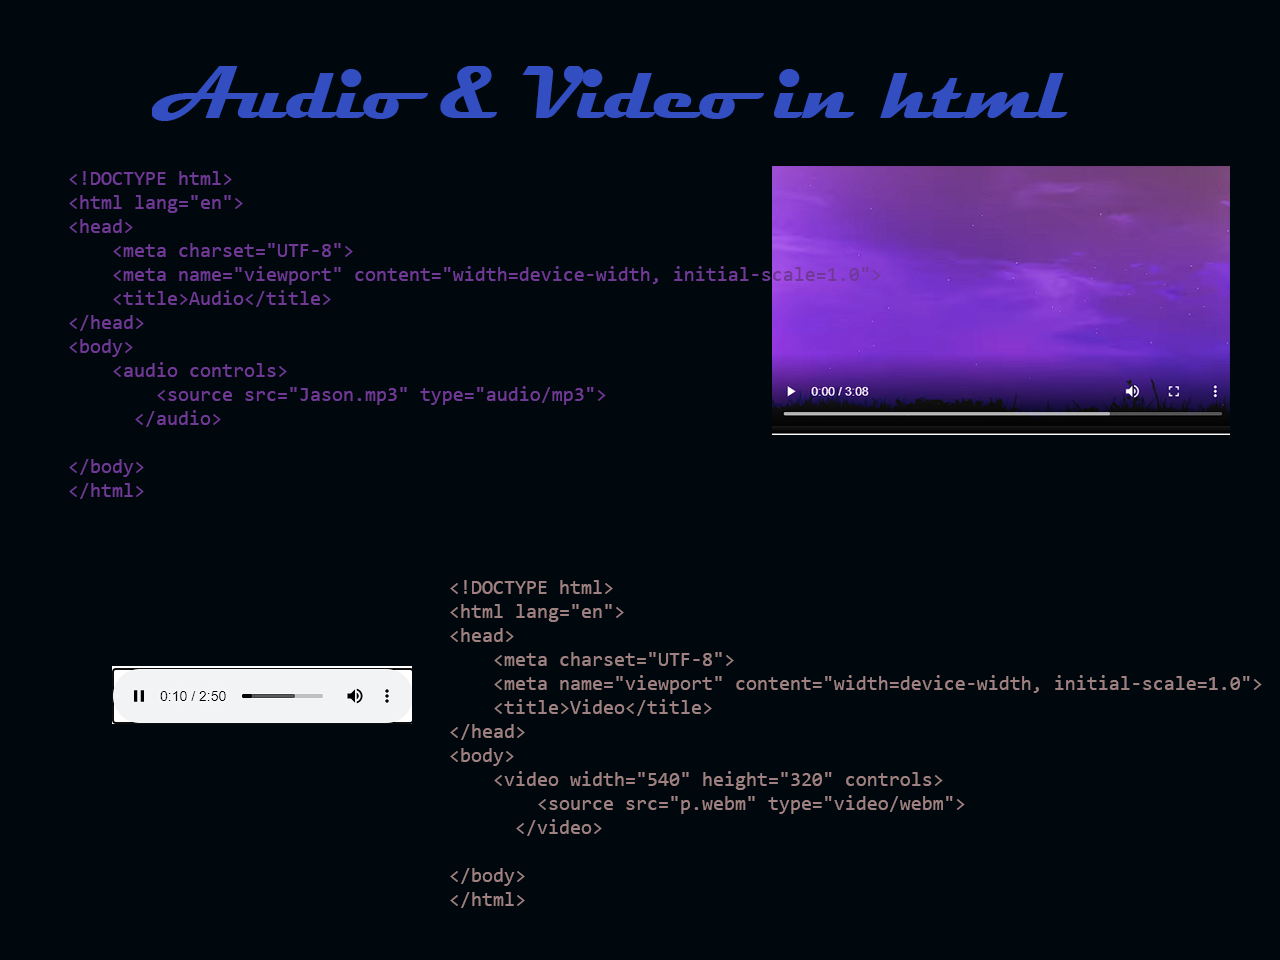 Audio & video in HTML with Source code